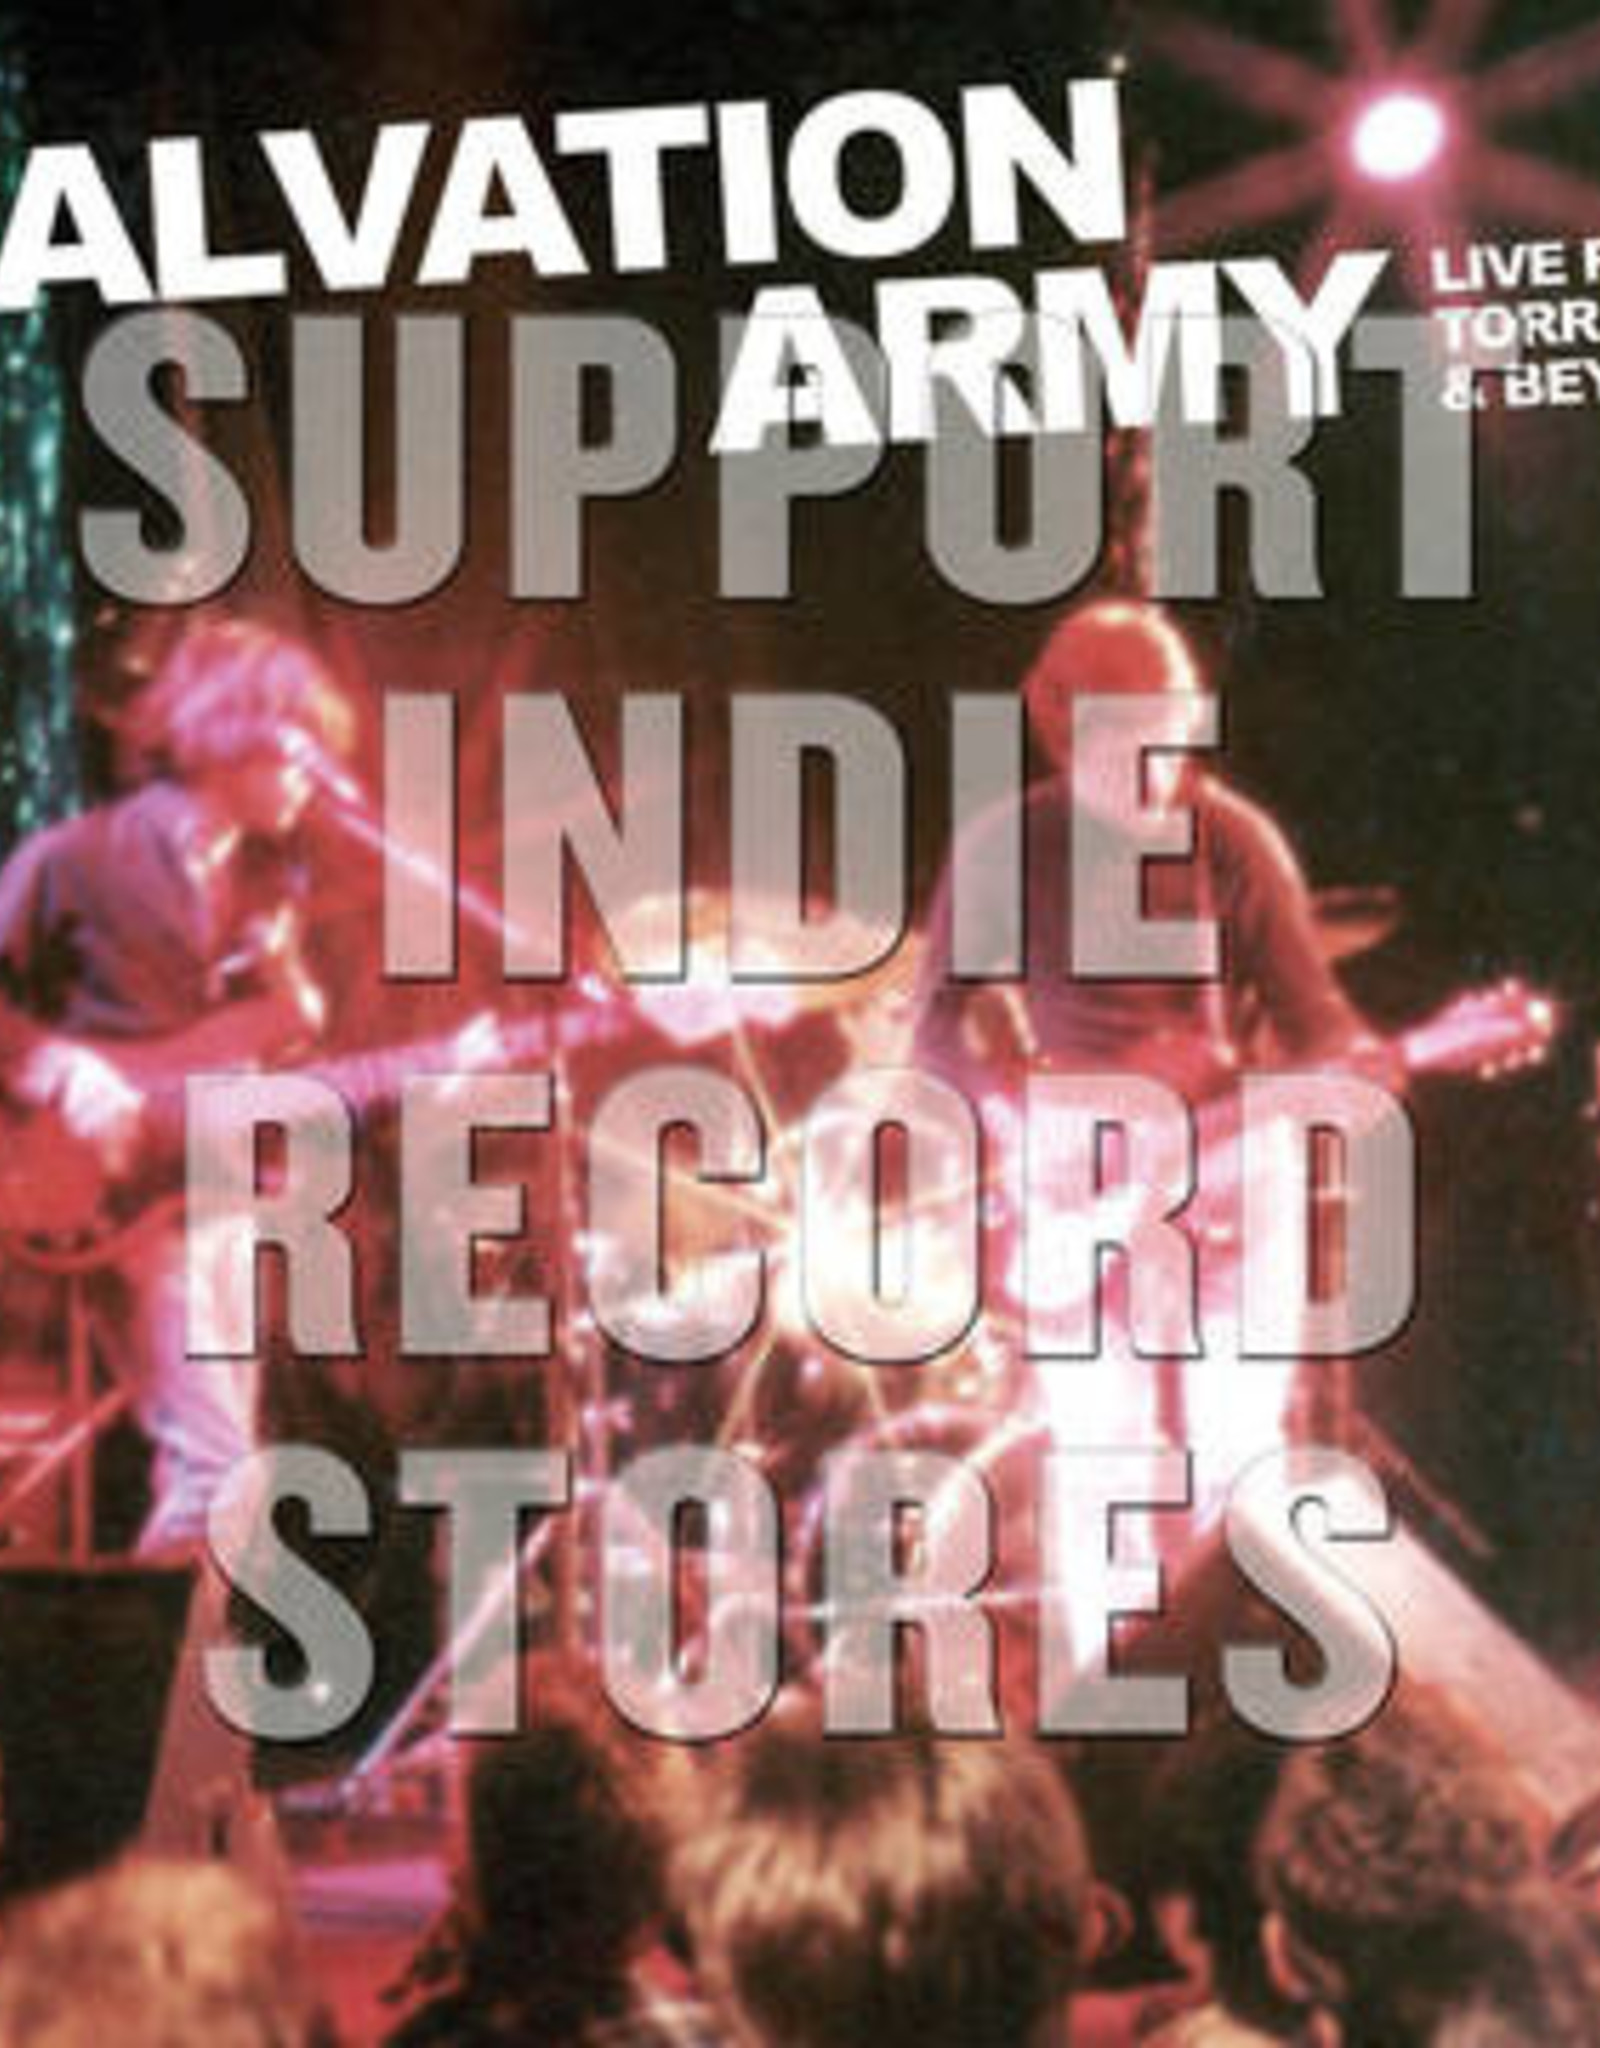 Salvation Army - Live From Torrance And Beyond(RSD 2019)